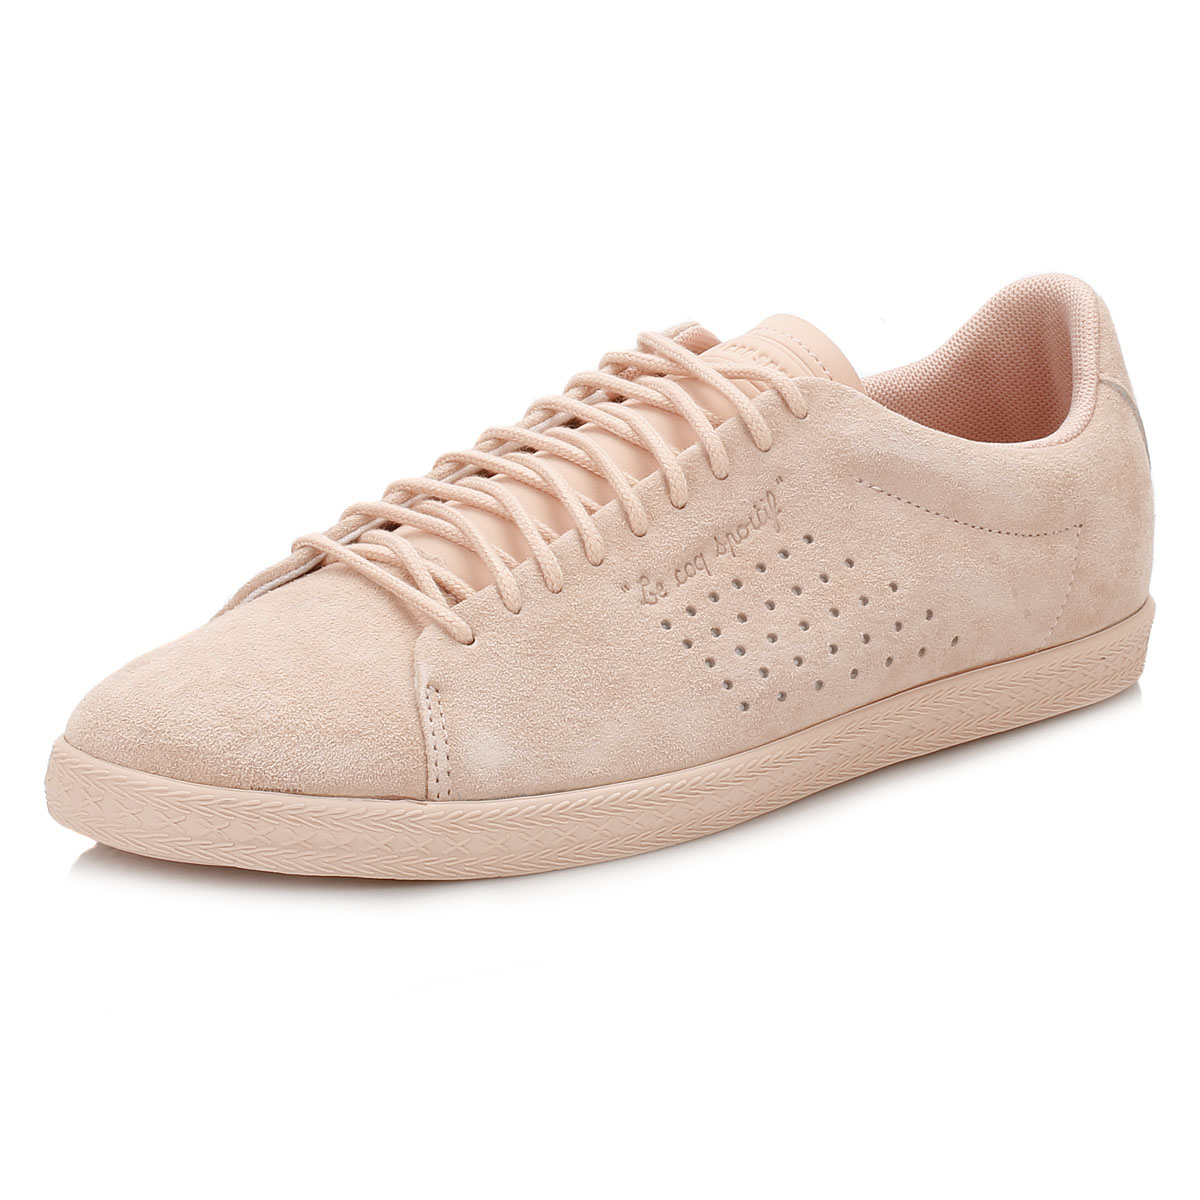 LE COQ SPORTIF Charline Suede Leather Trainers sale for nice shop cheap price with paypal countdown package cheap visit 1y4EVVlwp